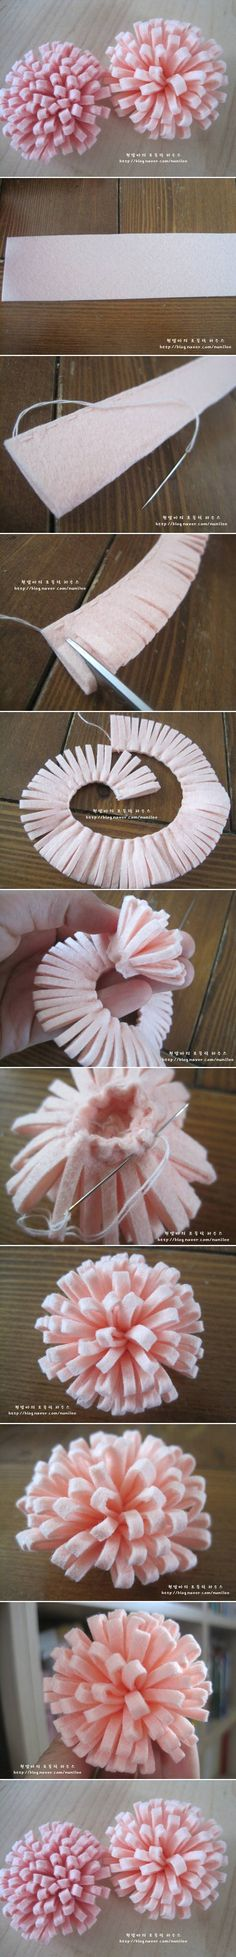 DIY Simple Easy Felt Flower DIY Simple Easy Felt Flower